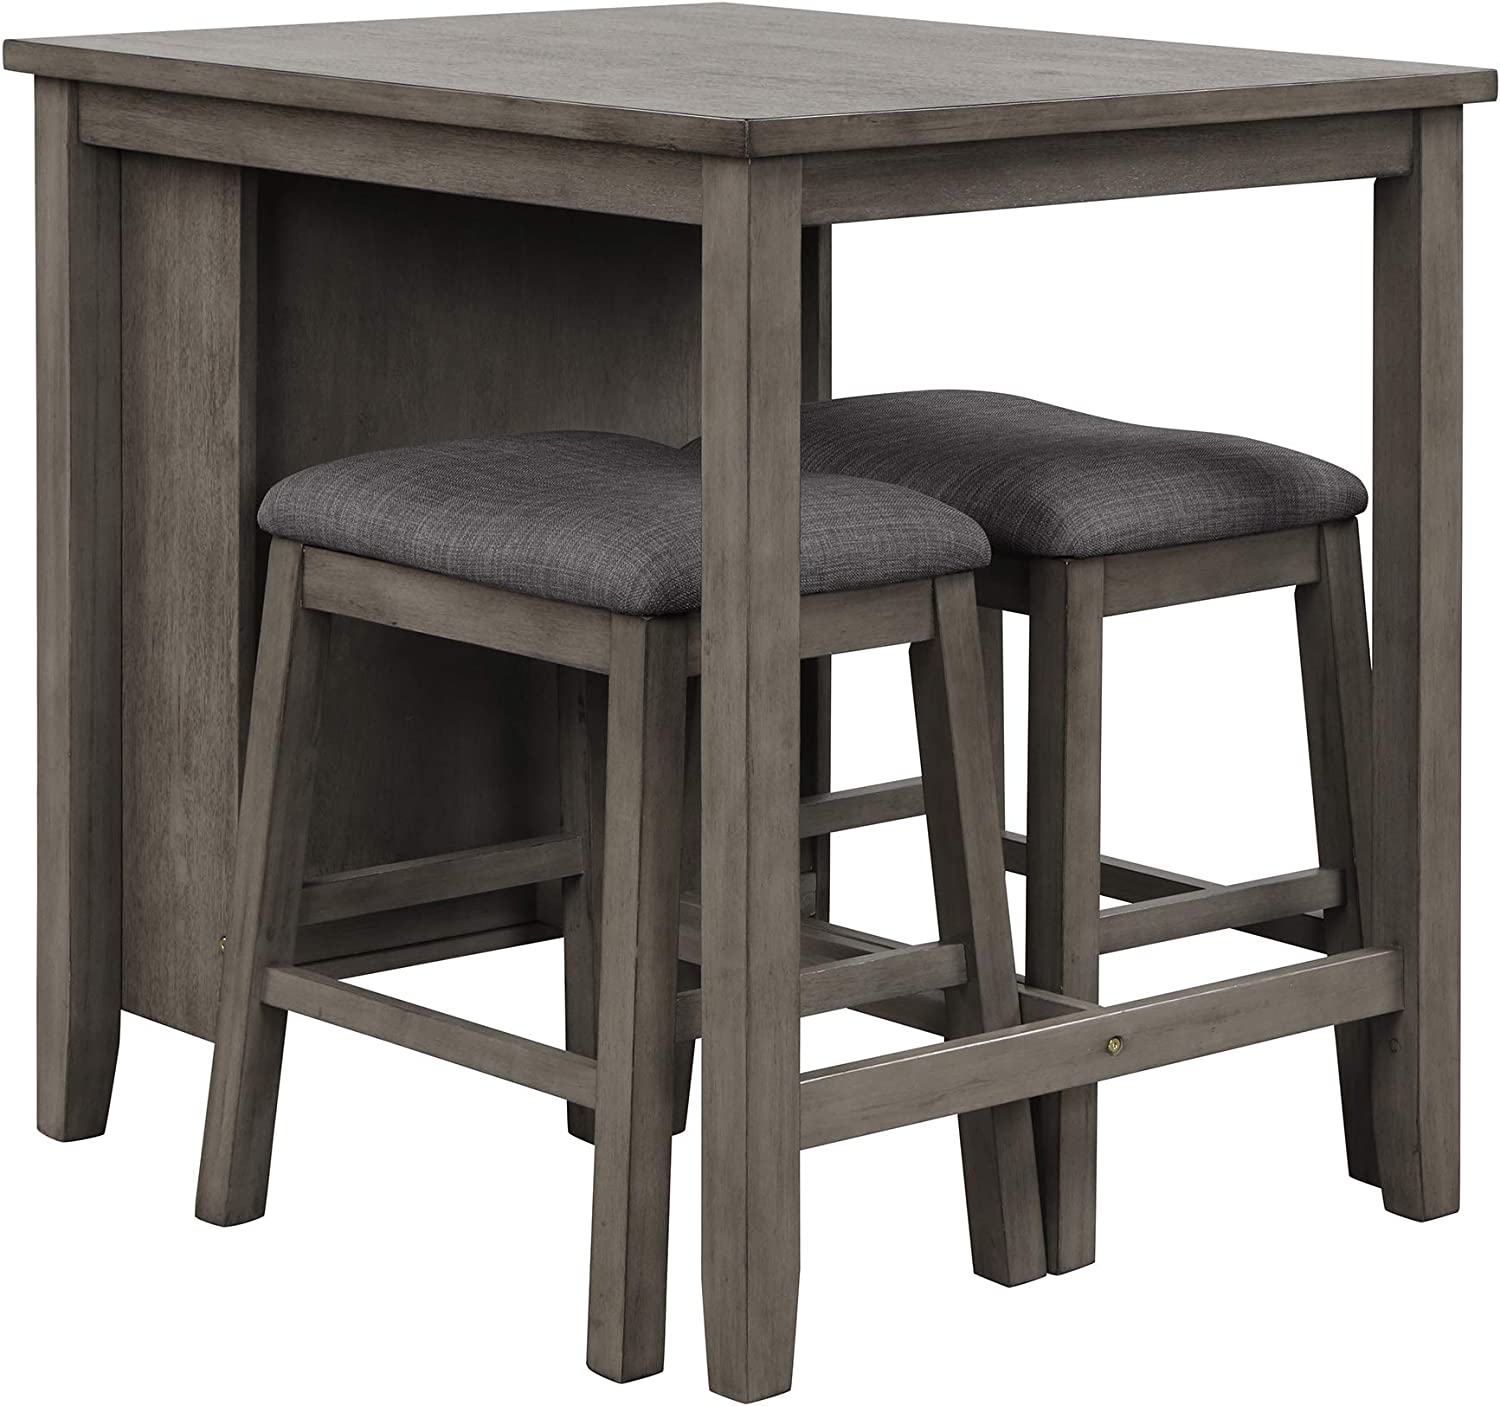 Dark Gray Table and Bar Stools for Kitchen,Living Room P PURLOVE 9 ...